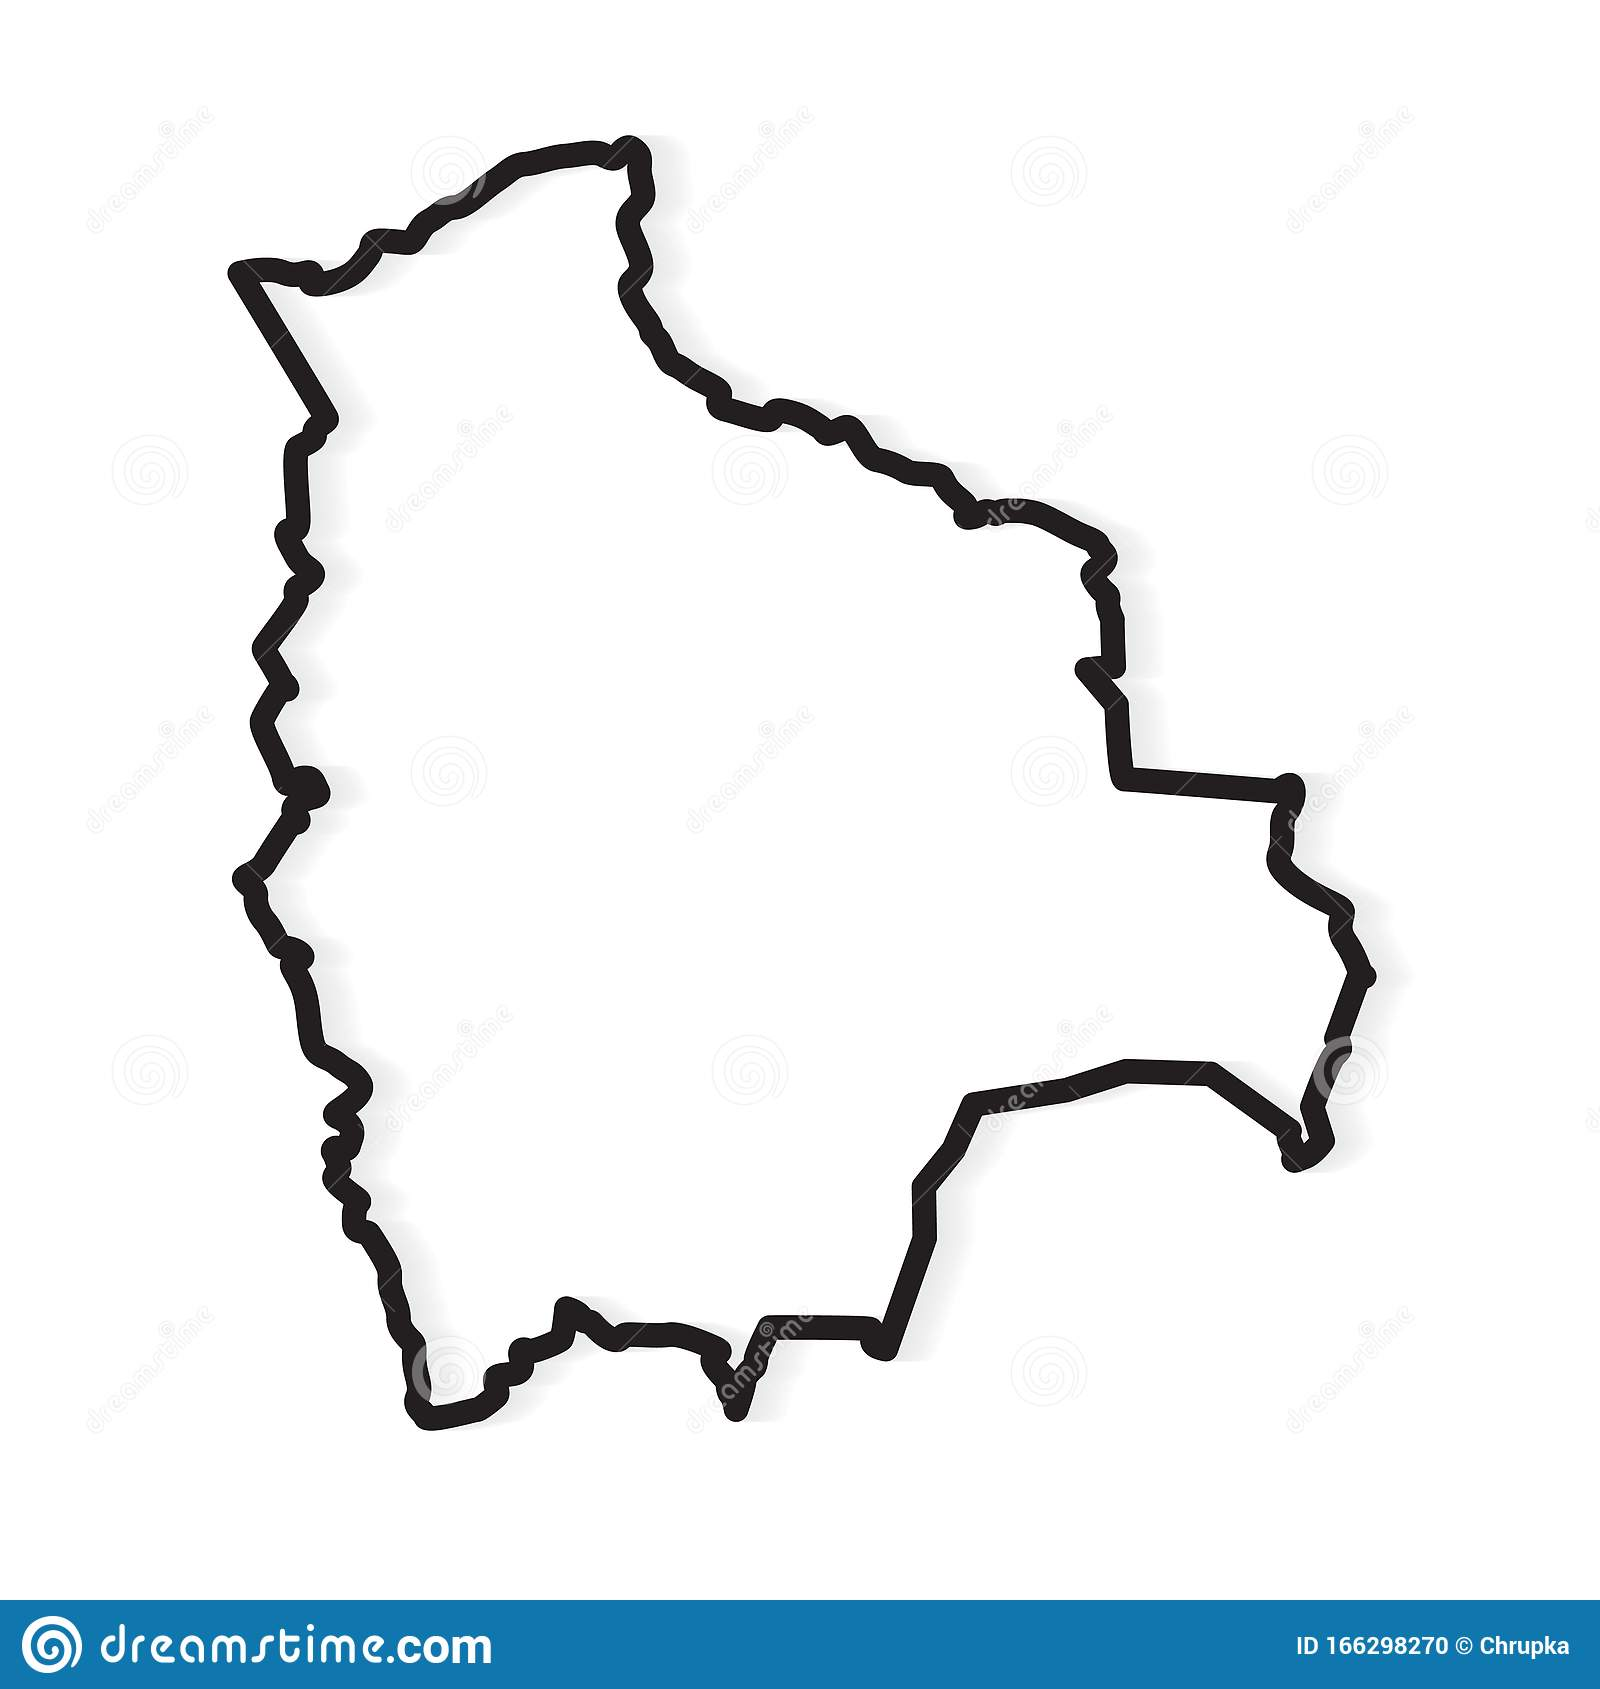 Picture of: Black Outline Of Bolivia Map Stock Vector Illustration Of Borders Spanish 166298270